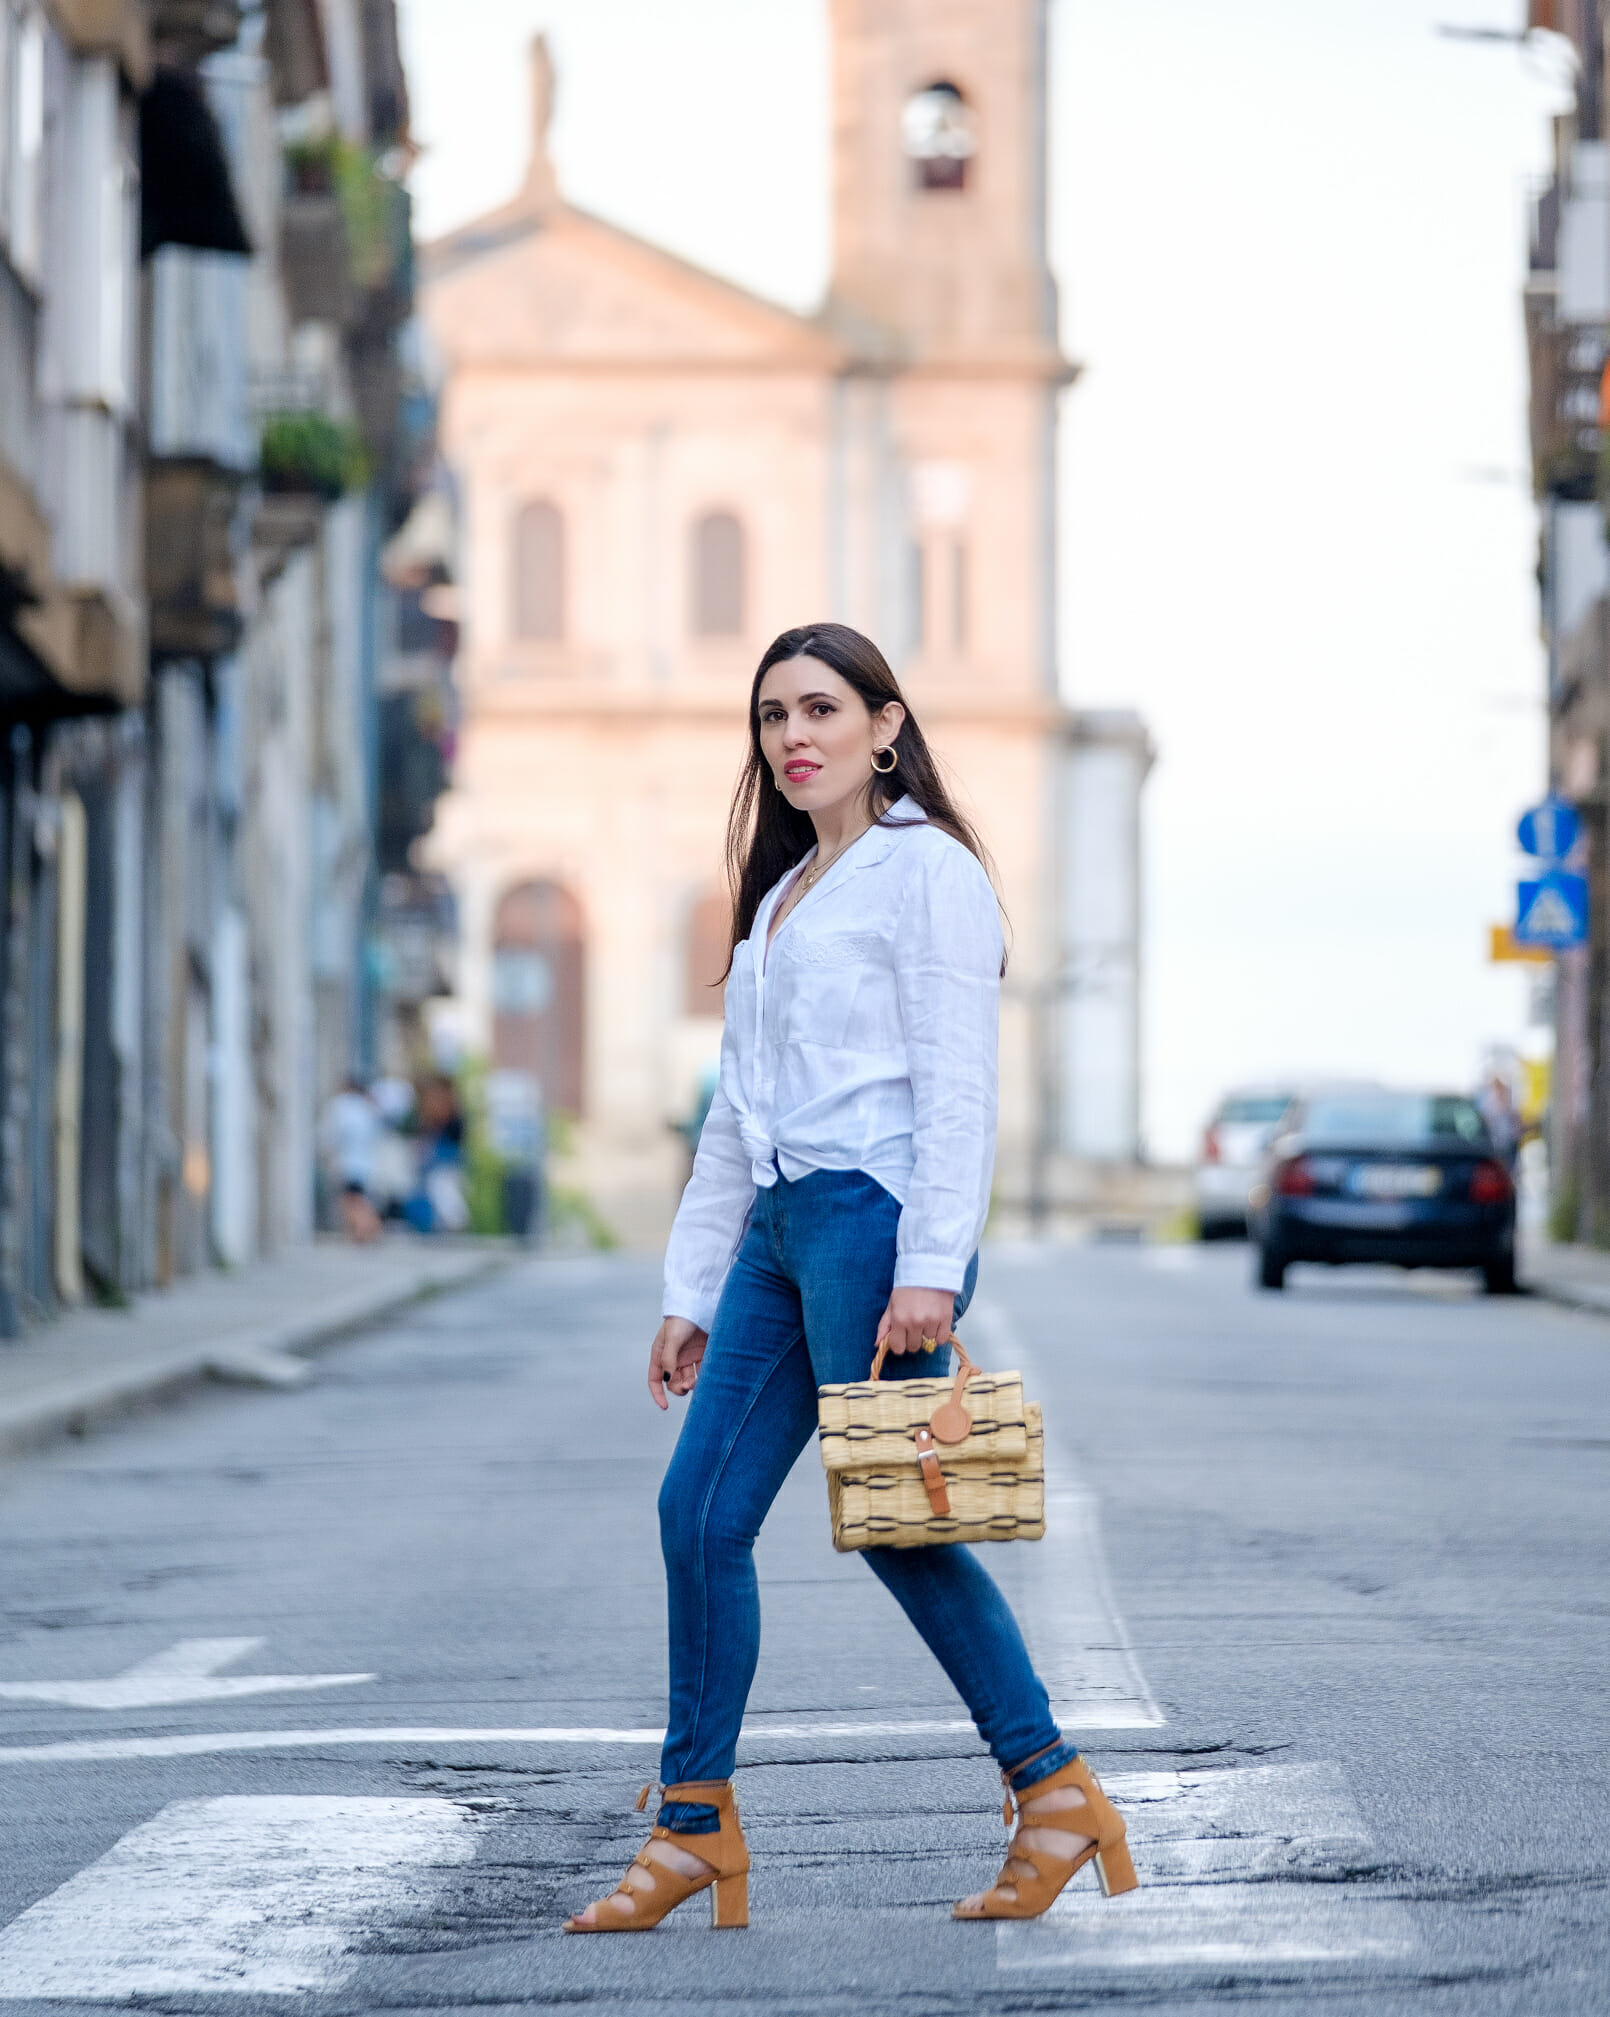 Le Fashionaire white linen embroidered zara shirt denim zara jeans camel suede stradivarius sandals straw bag toino abel 2710 EN white linen embroidered zara shirt denim zara jeans camel suede stradivarius sandals straw bag toino abel 2710 EN